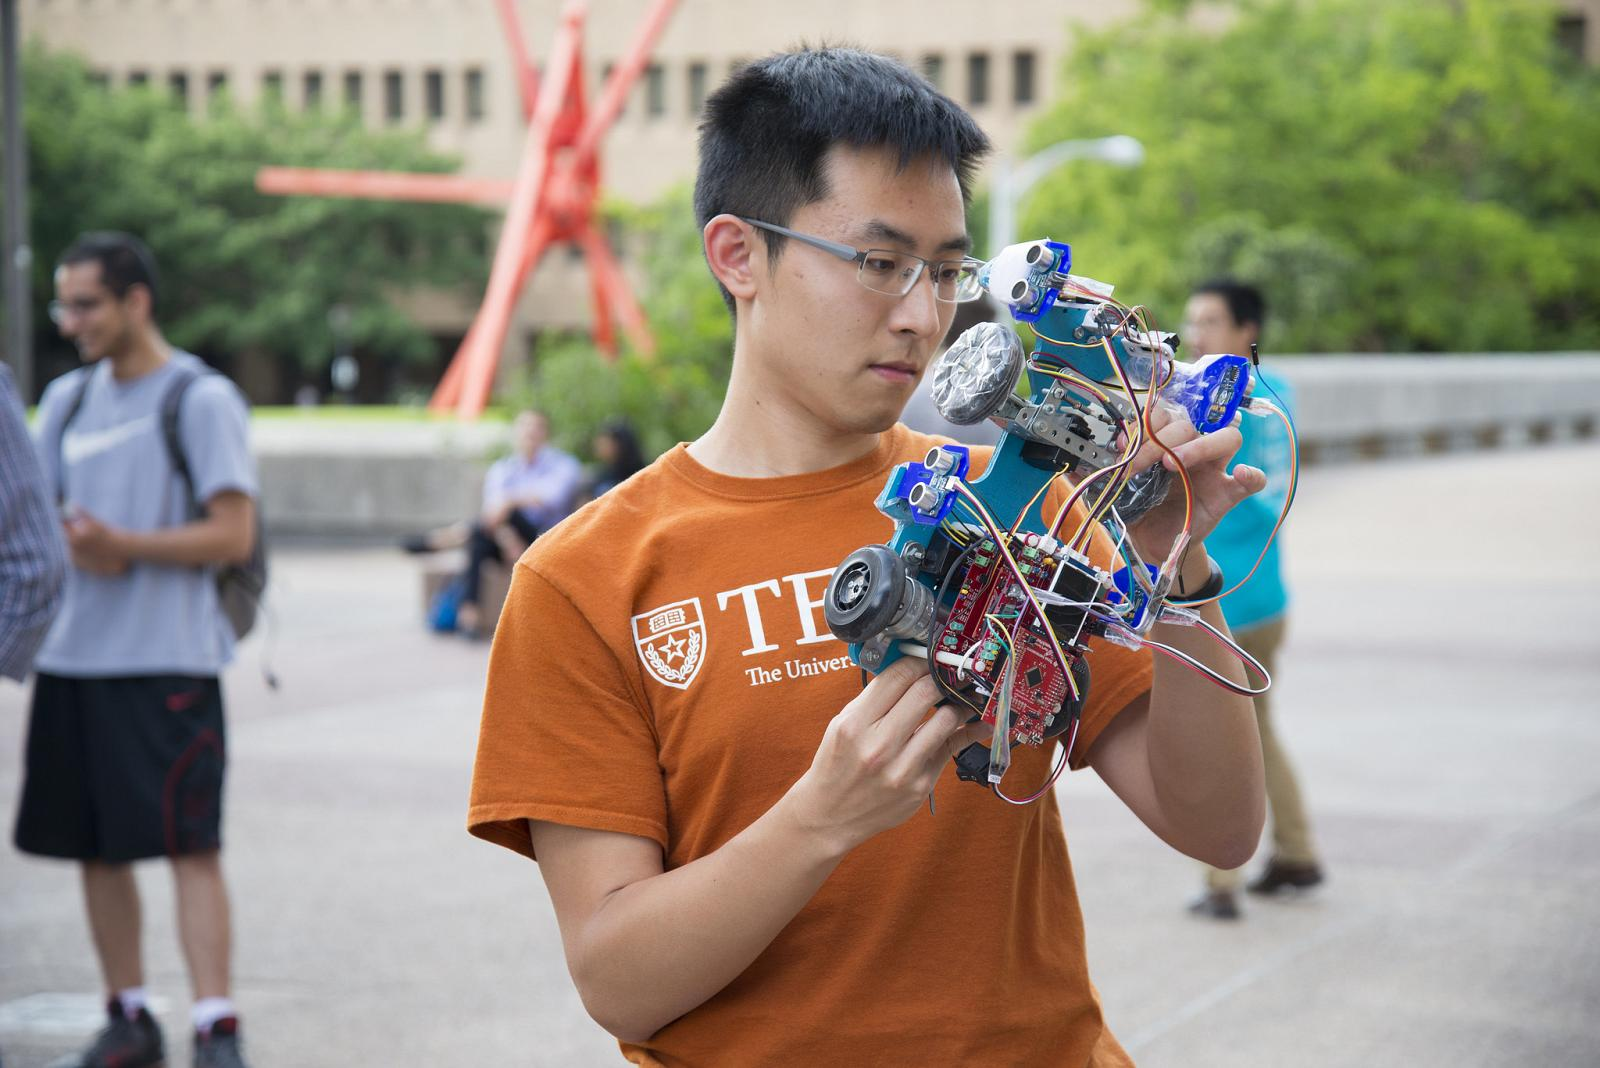 student with robotic car